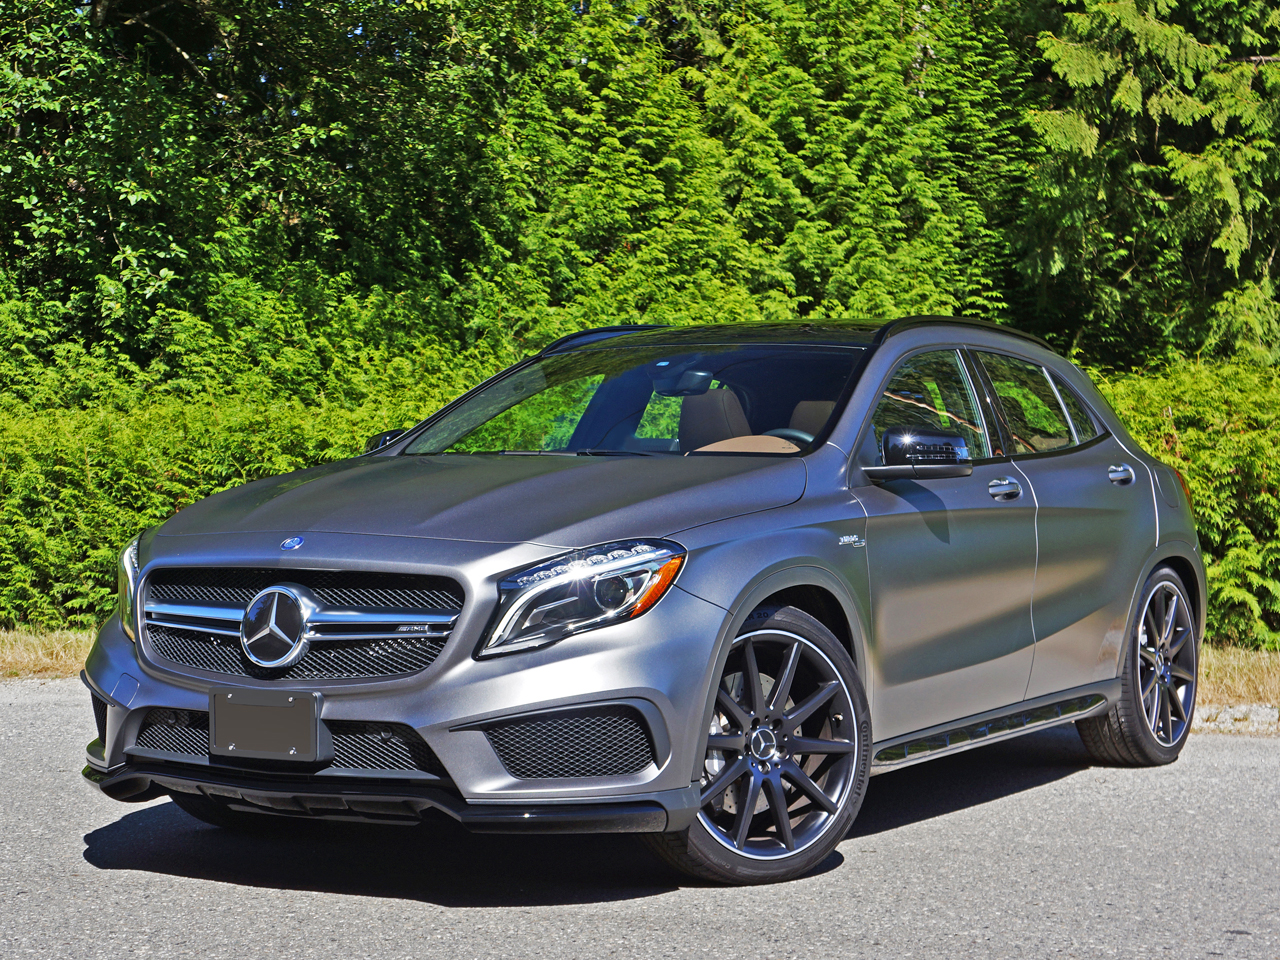 2016 mercedes benz gla 45 amg 4matic road test review carcostcanada. Black Bedroom Furniture Sets. Home Design Ideas